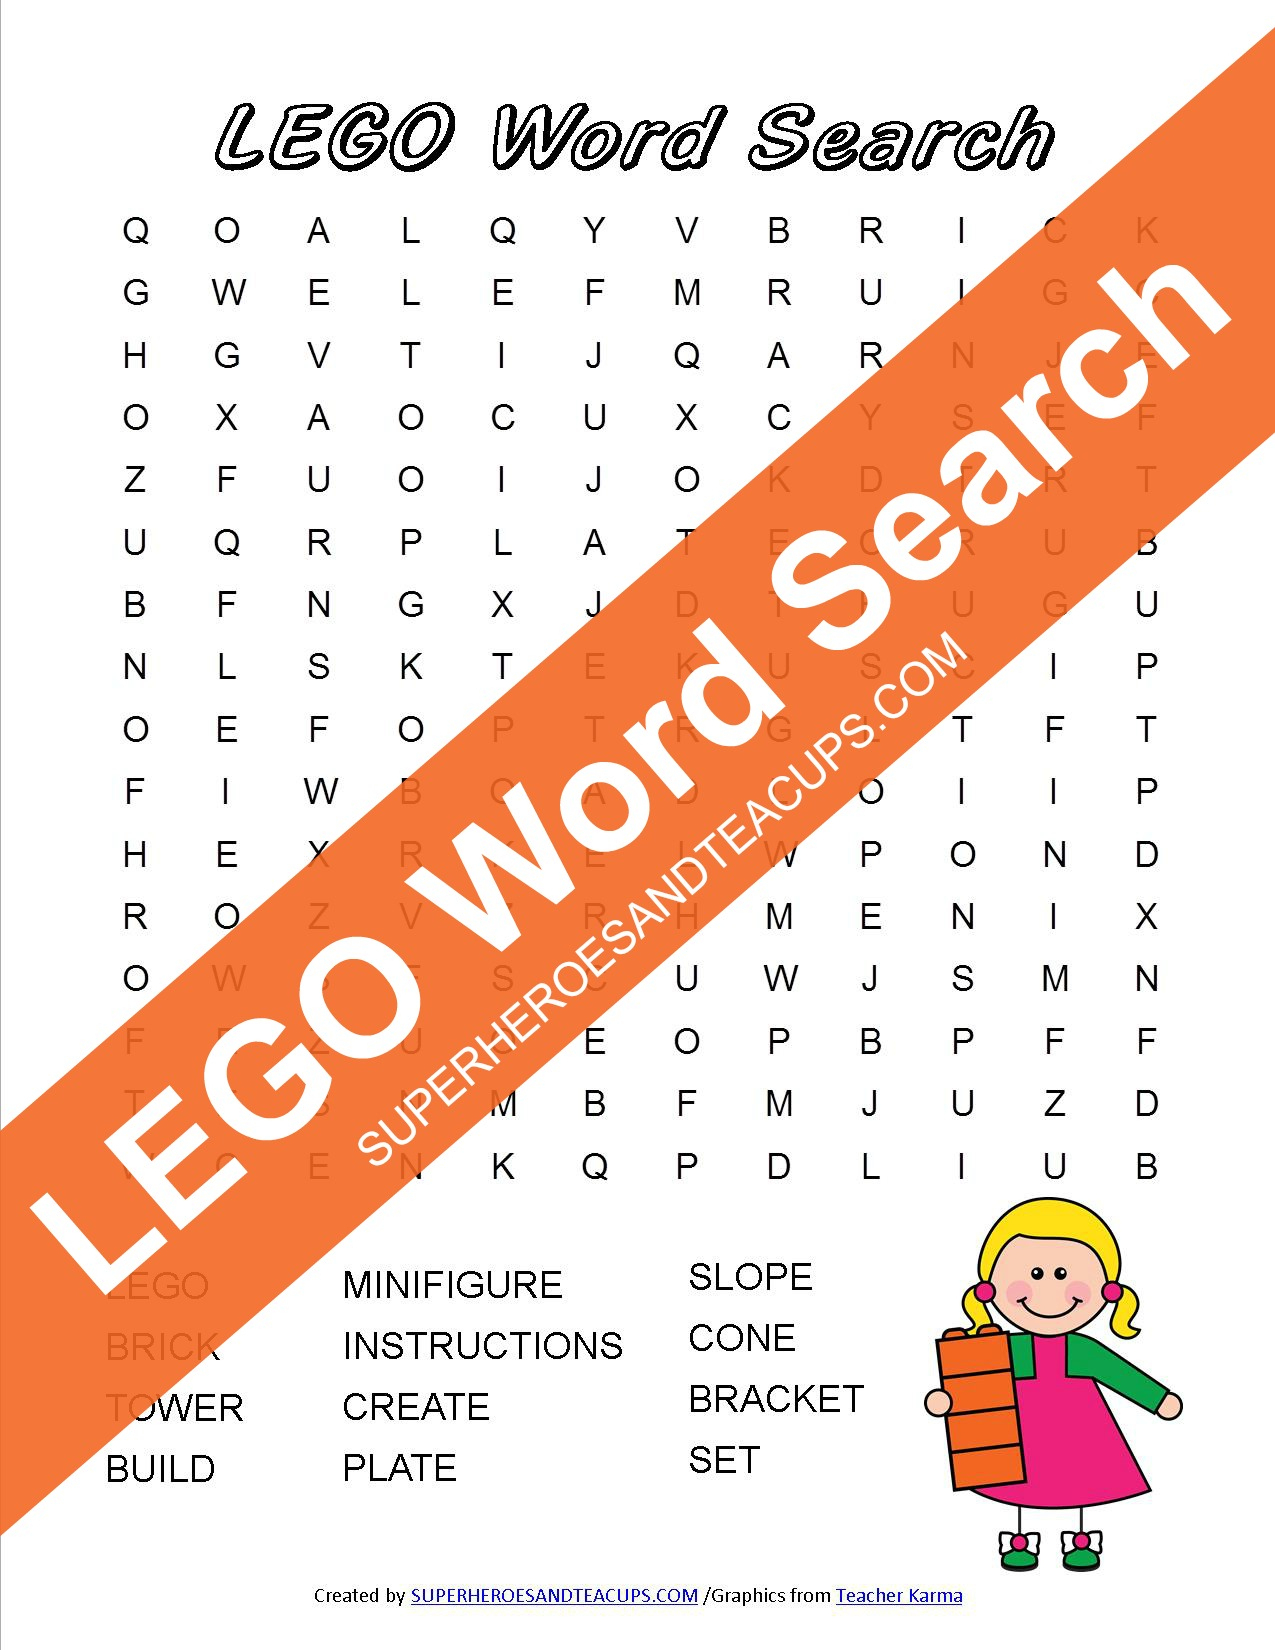 Lego Word Search Free Printable - Printable Lego Crossword Puzzle